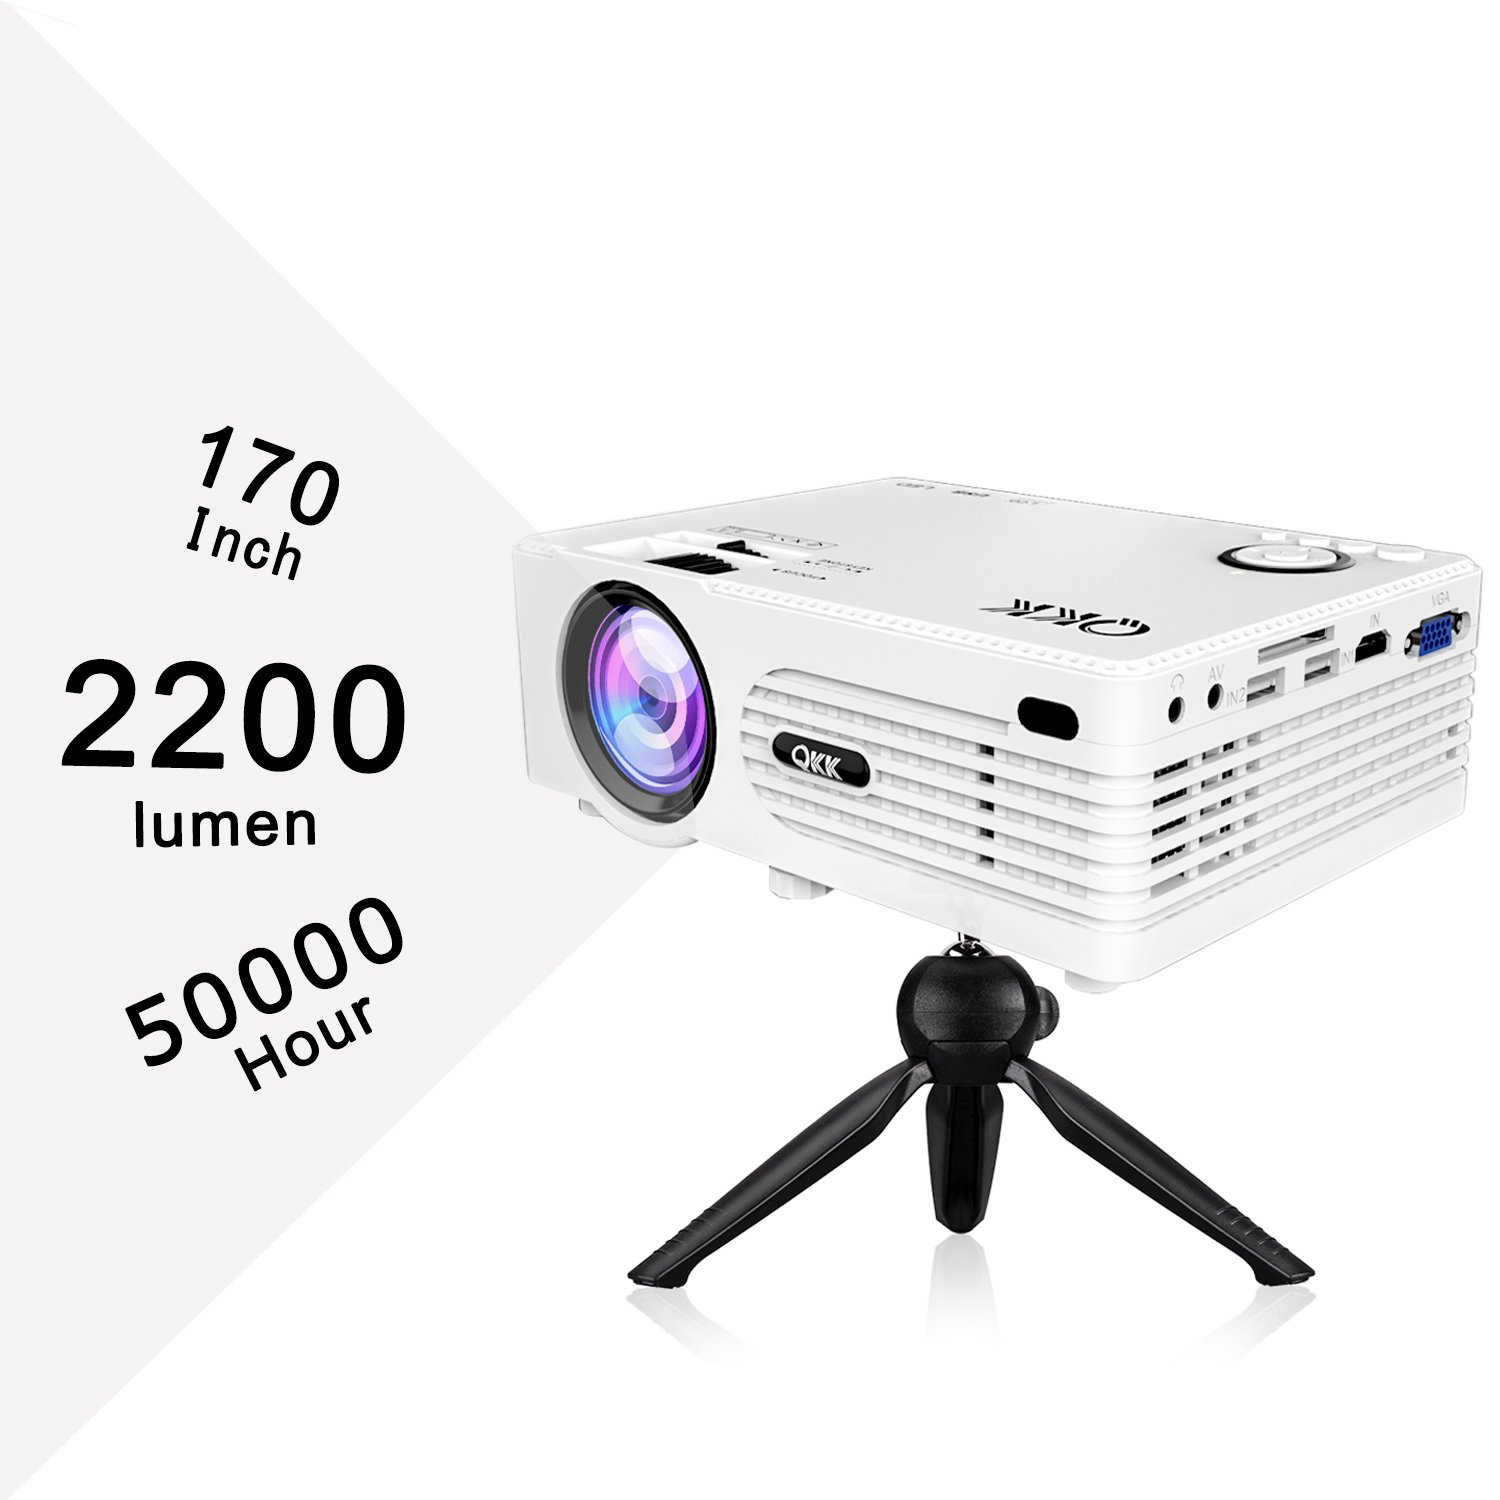 """QKK 2200lumen Mini Projector - Full HD LED Video Projector 1080P Supported, 50,000 Hour Lamp Life with 170"""" Big Display for Home Teather, HDMI, TV, SD Card, AV, VGA, USB x2, iPhone, iPad, Android, PS4"""